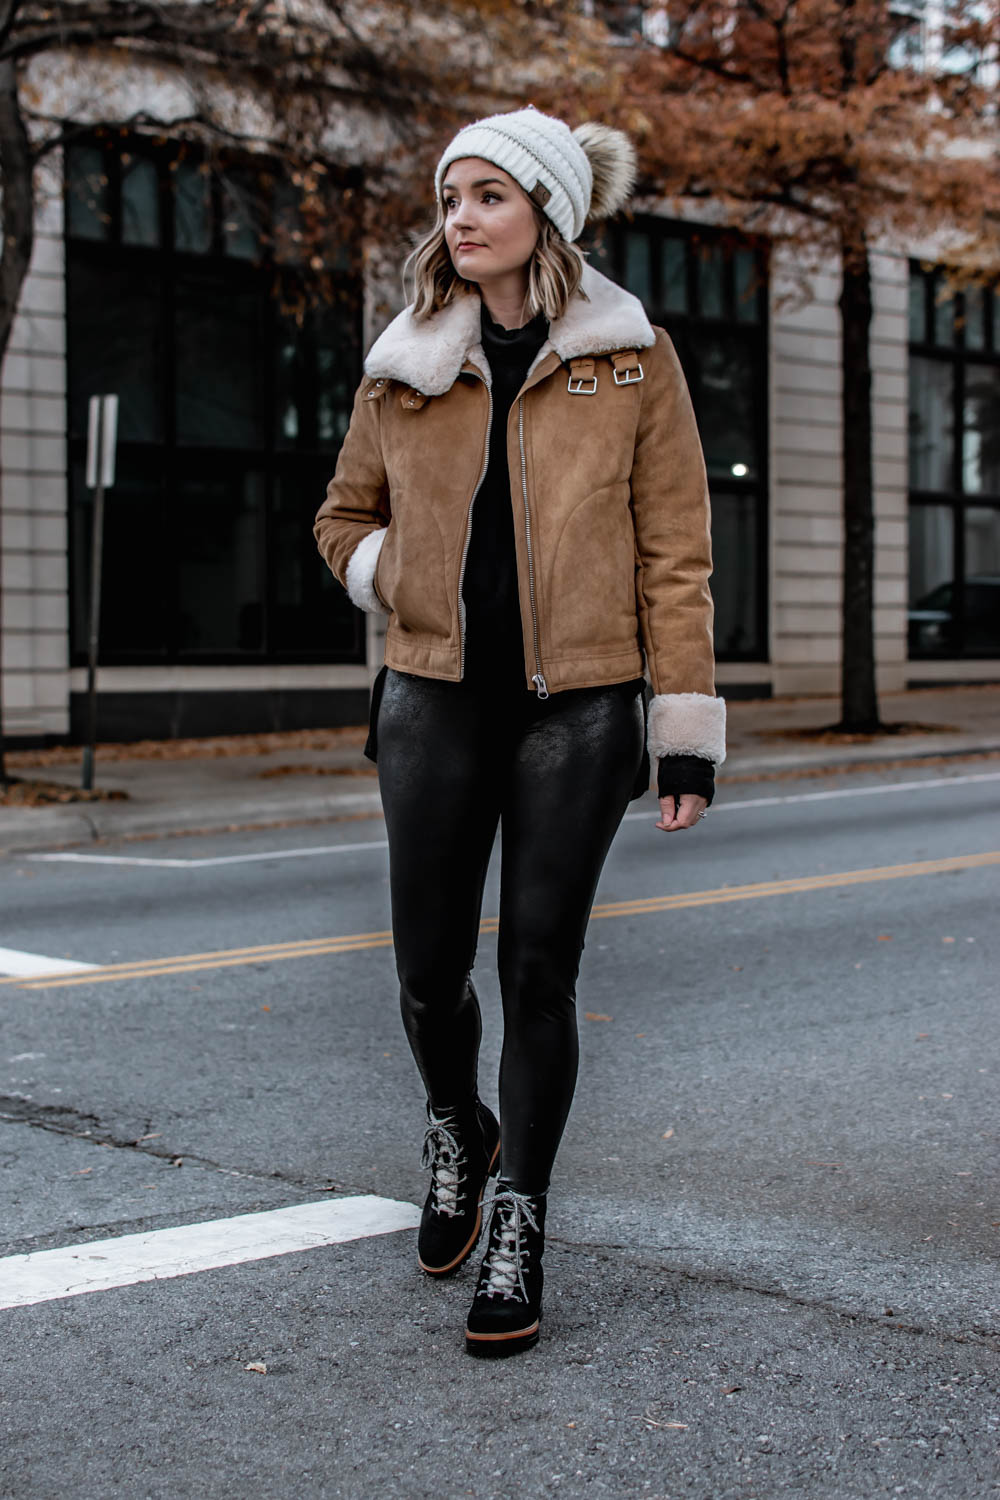 Suede Moto Jacket with Faux Leather Leggings Outfit